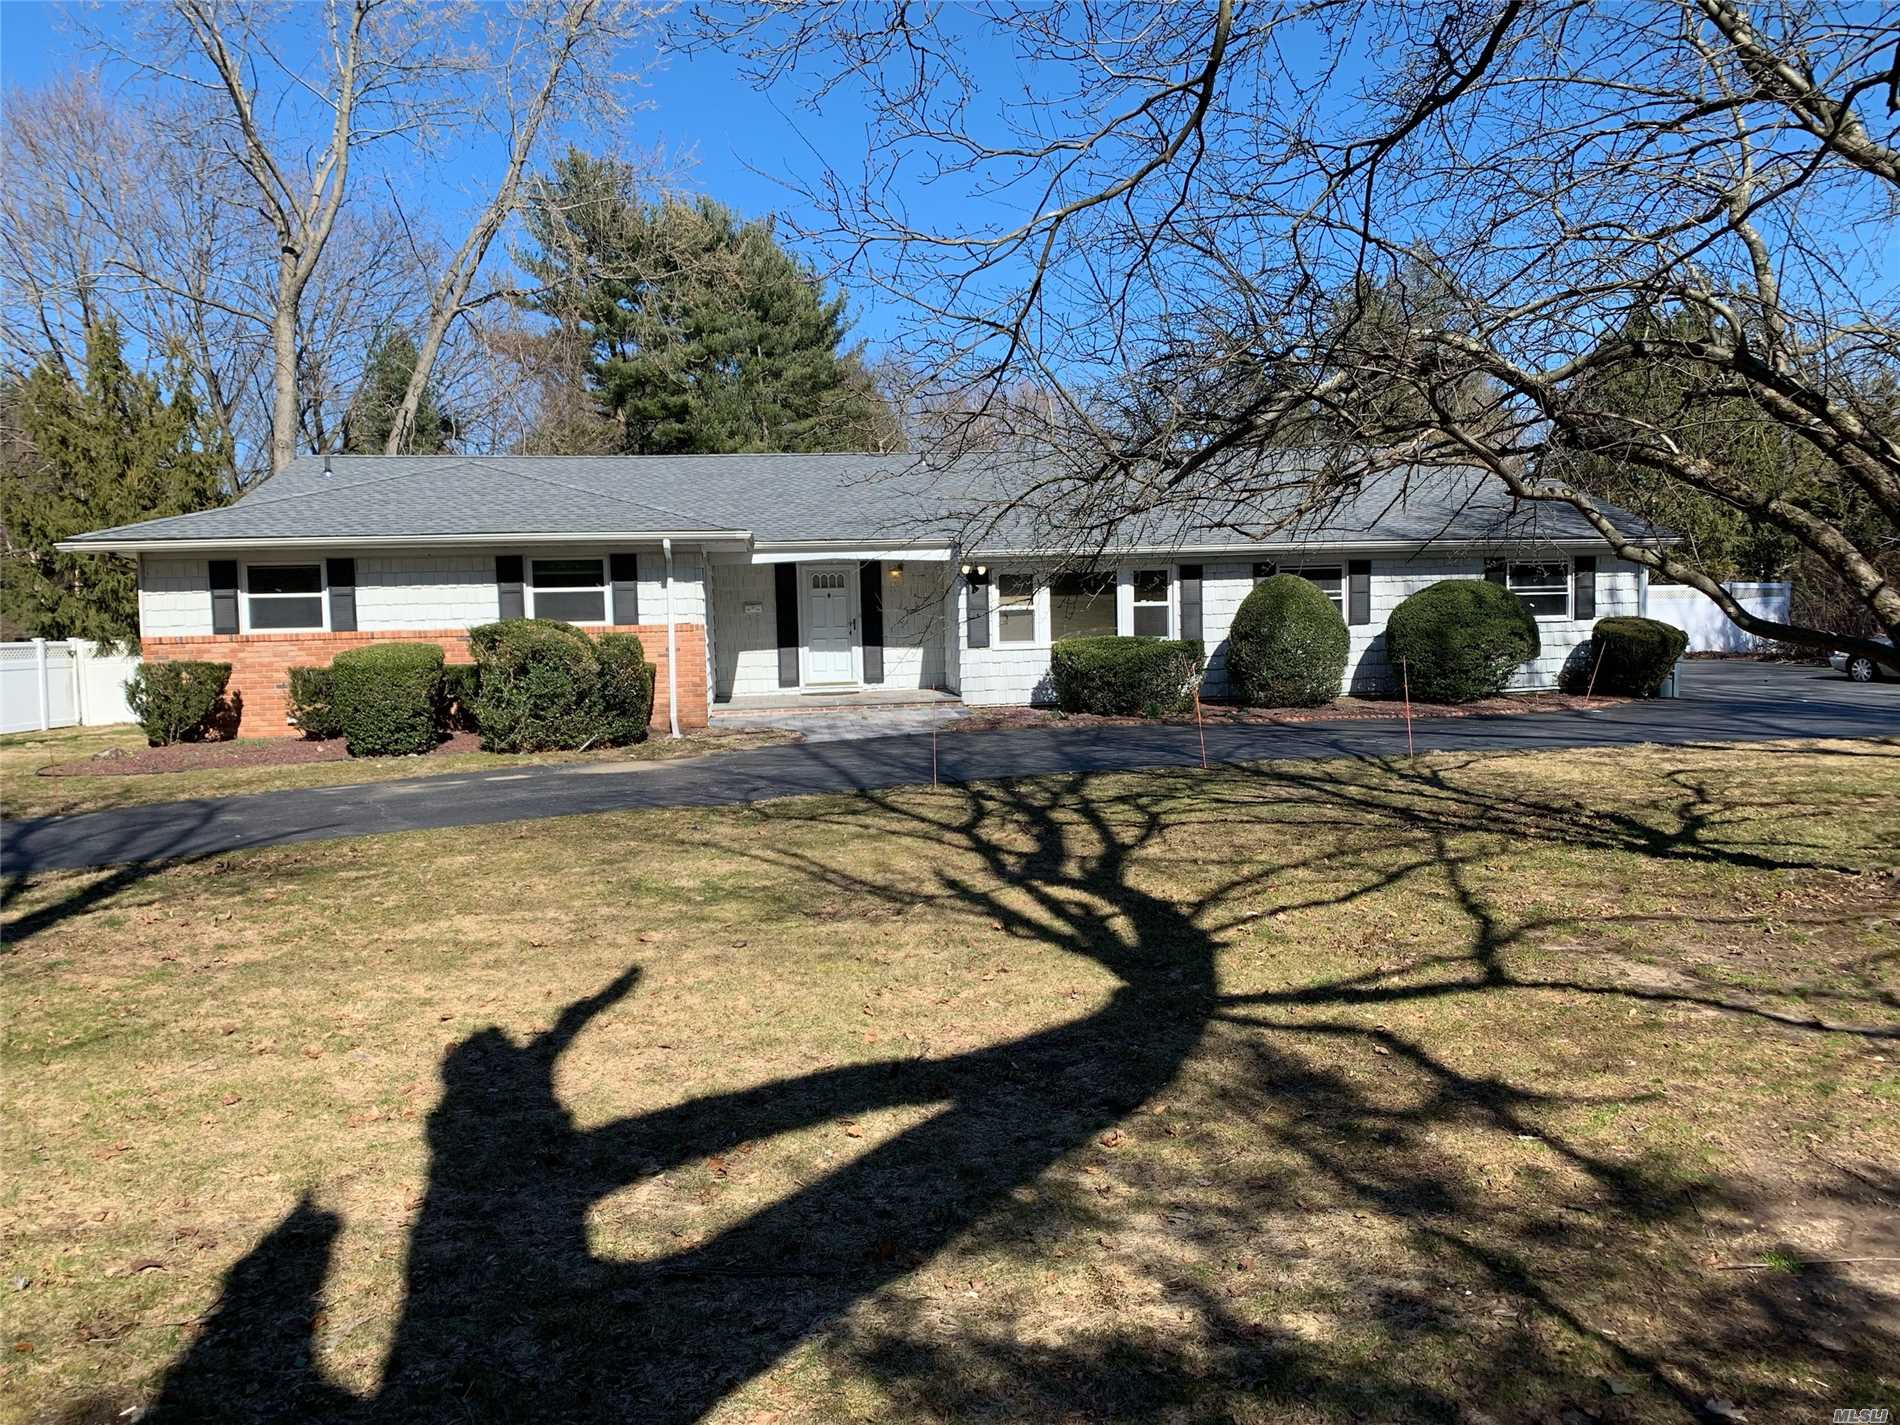 Expanded 4 Bedroom, 2.5 Bathroom Ranch on 1 Perfect Acre! Hardwood Floors! Granite EIK! SS Appliances! Brand New Mstr Bath! Bonus Rms! Finished Basement! New Roof! New Refrigerator And Cooktop! Close To All Including Shopping, LIRR & Golf Courses! Famed Syosset SD!